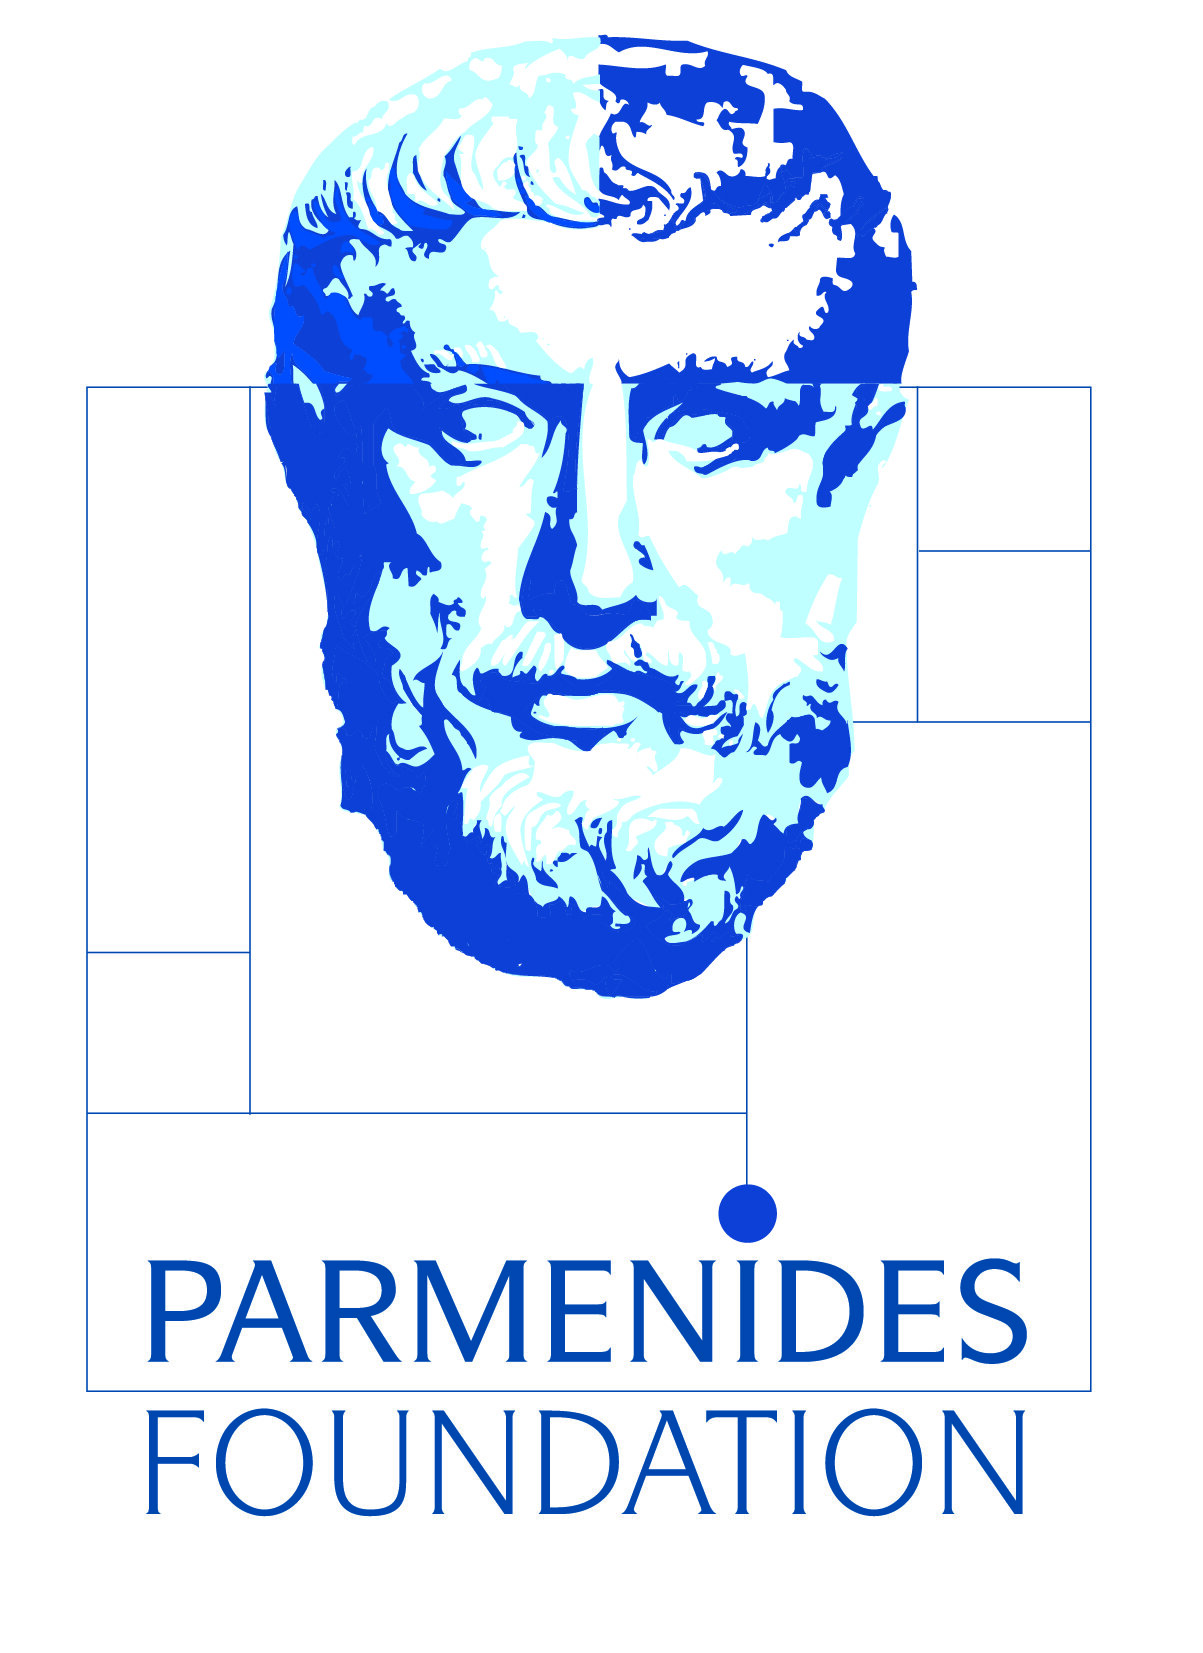 Parmenides Foundation